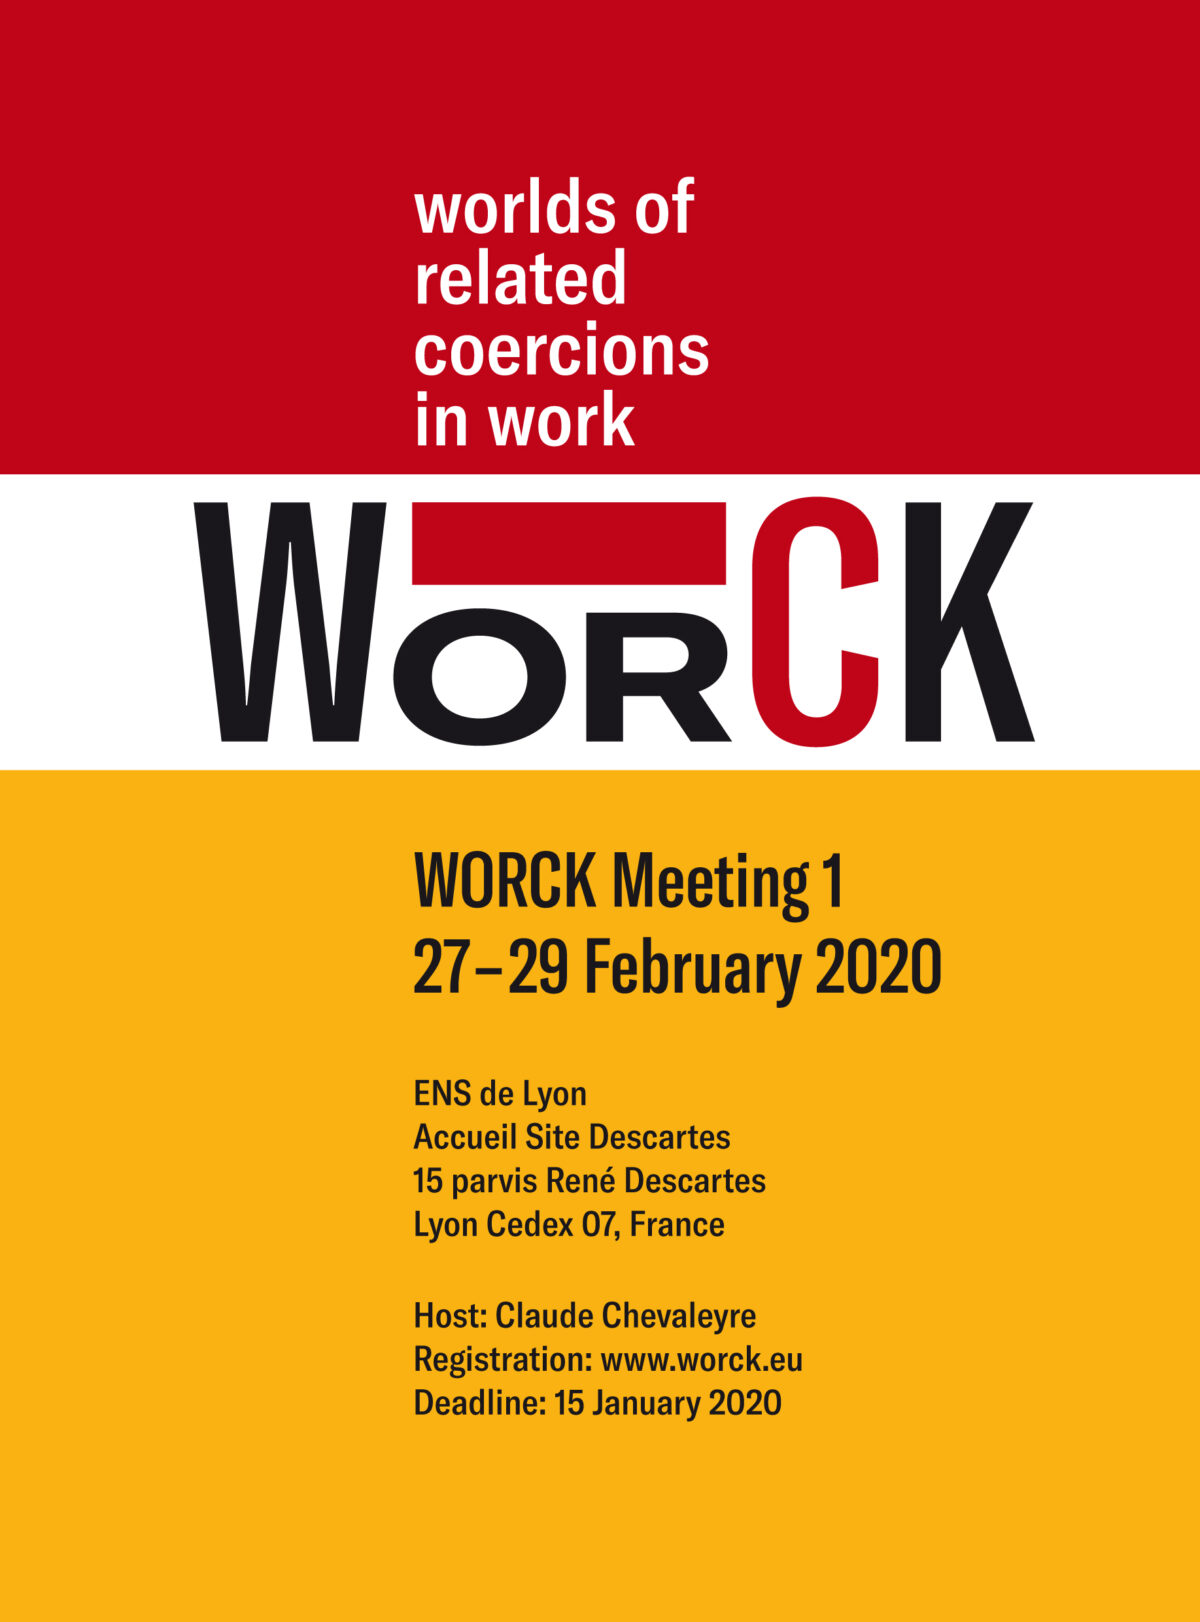 WORCK Meeting